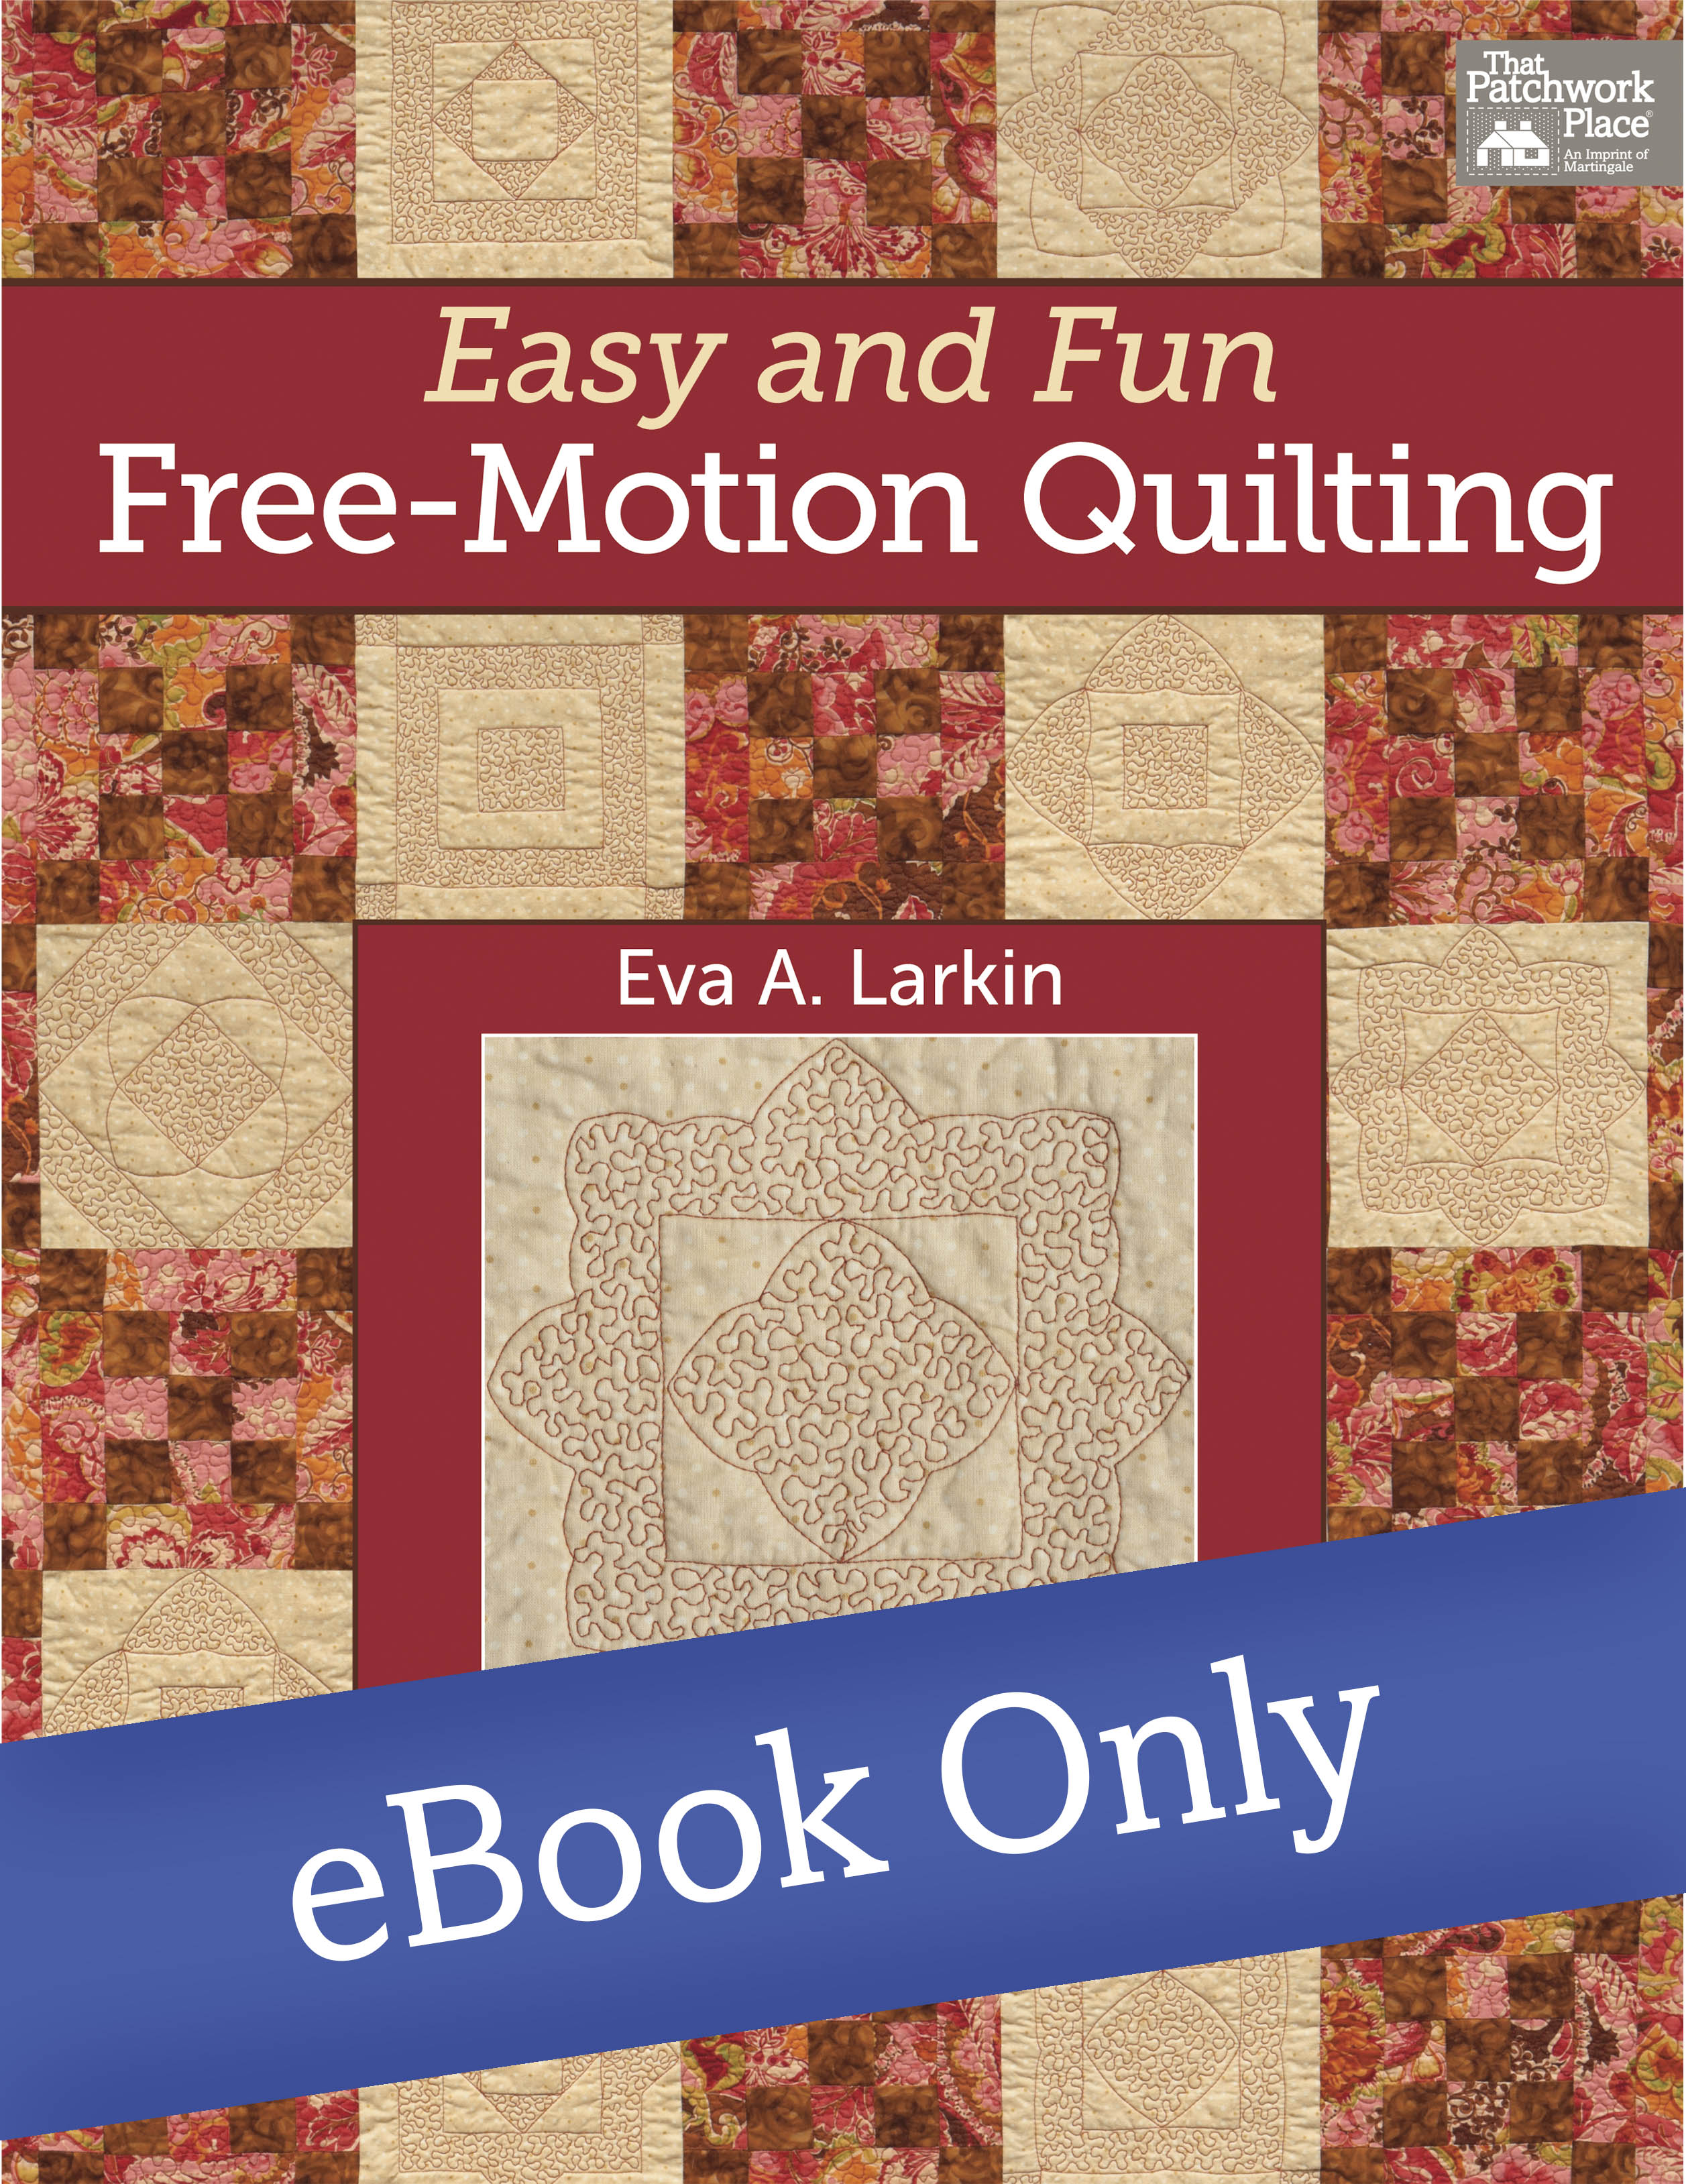 Free Motion Quilting Designs Easy : Martingale - Easy and Fun Free-Motion Quilting eBook